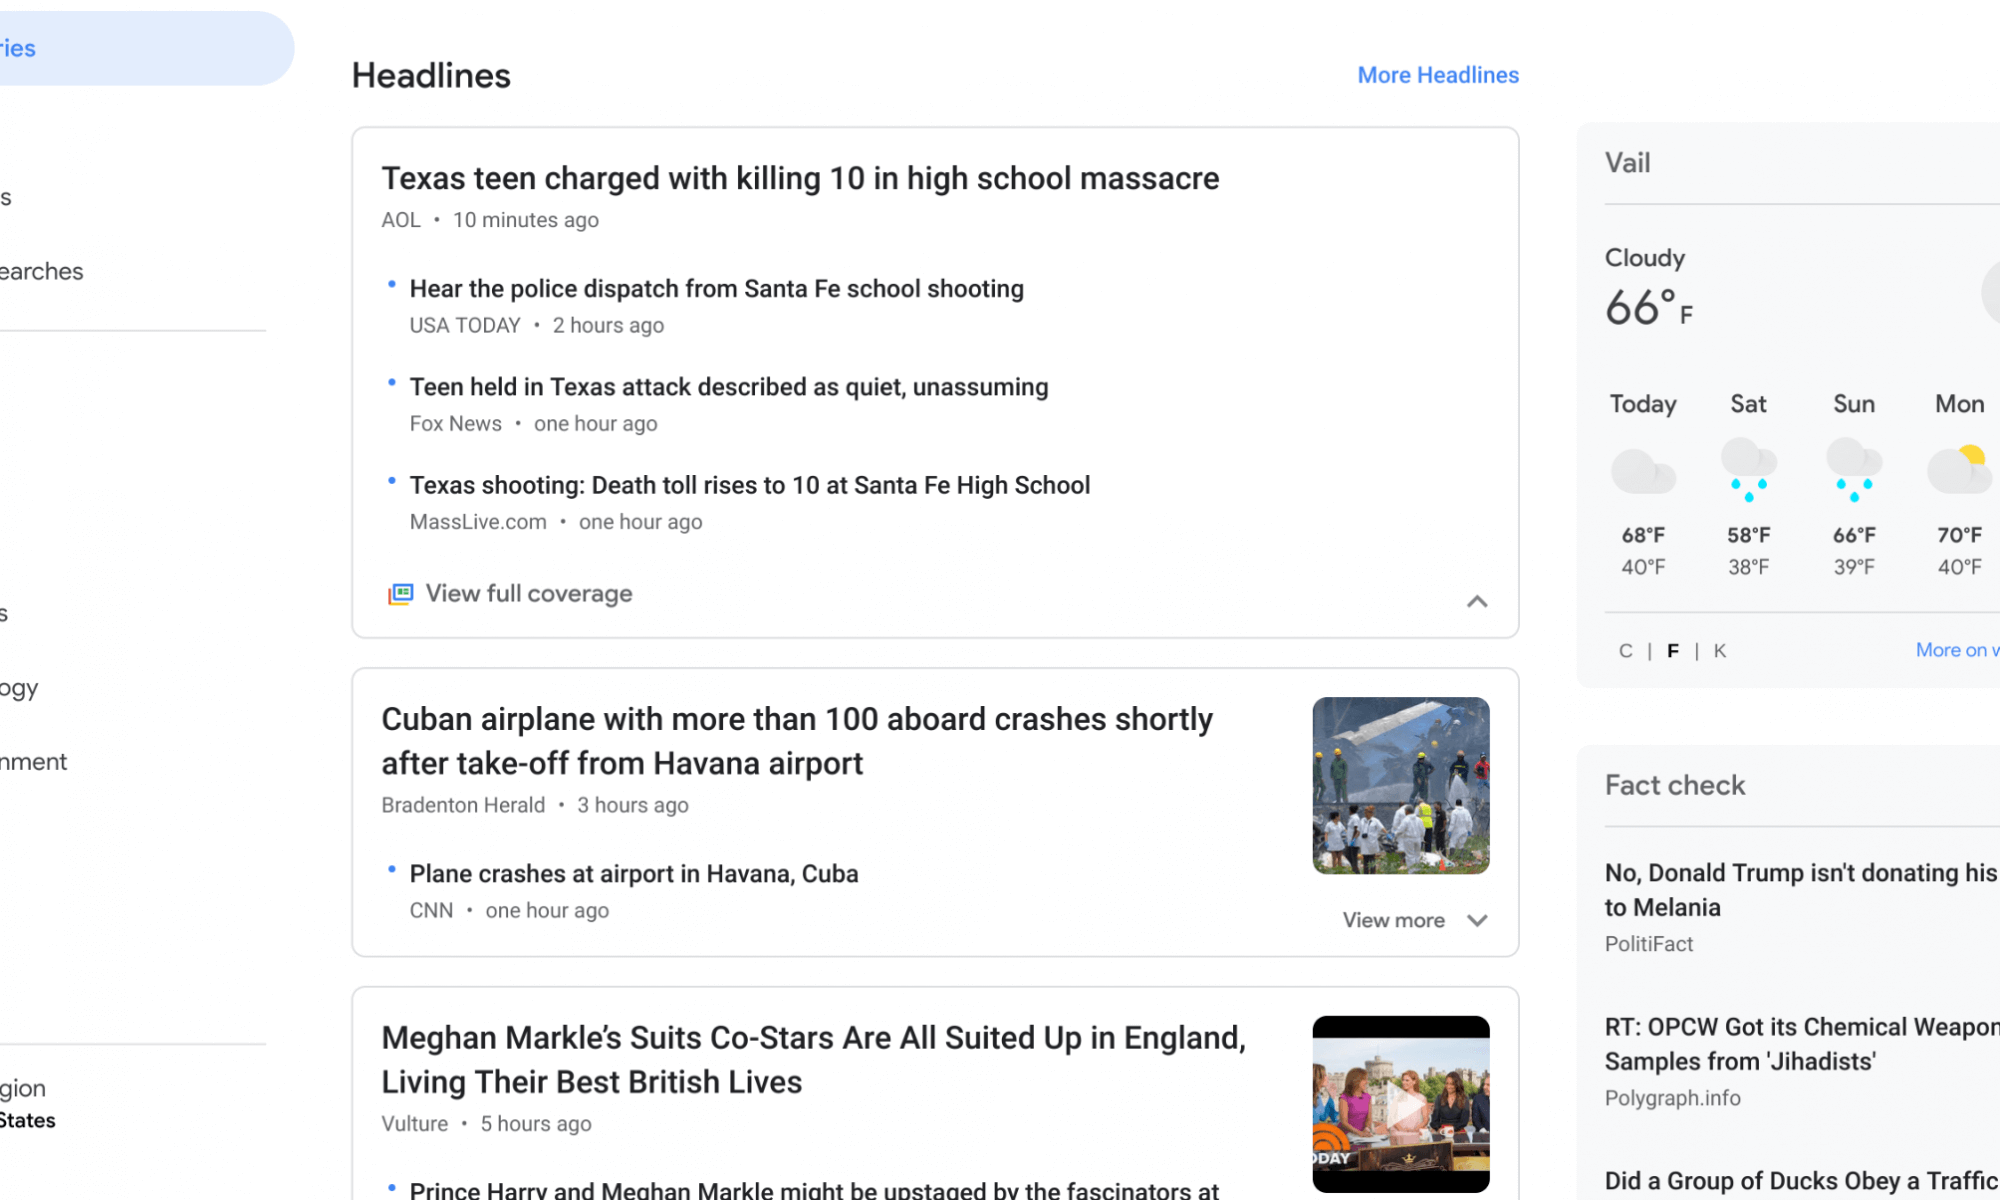 Google News Material Design - May 2018